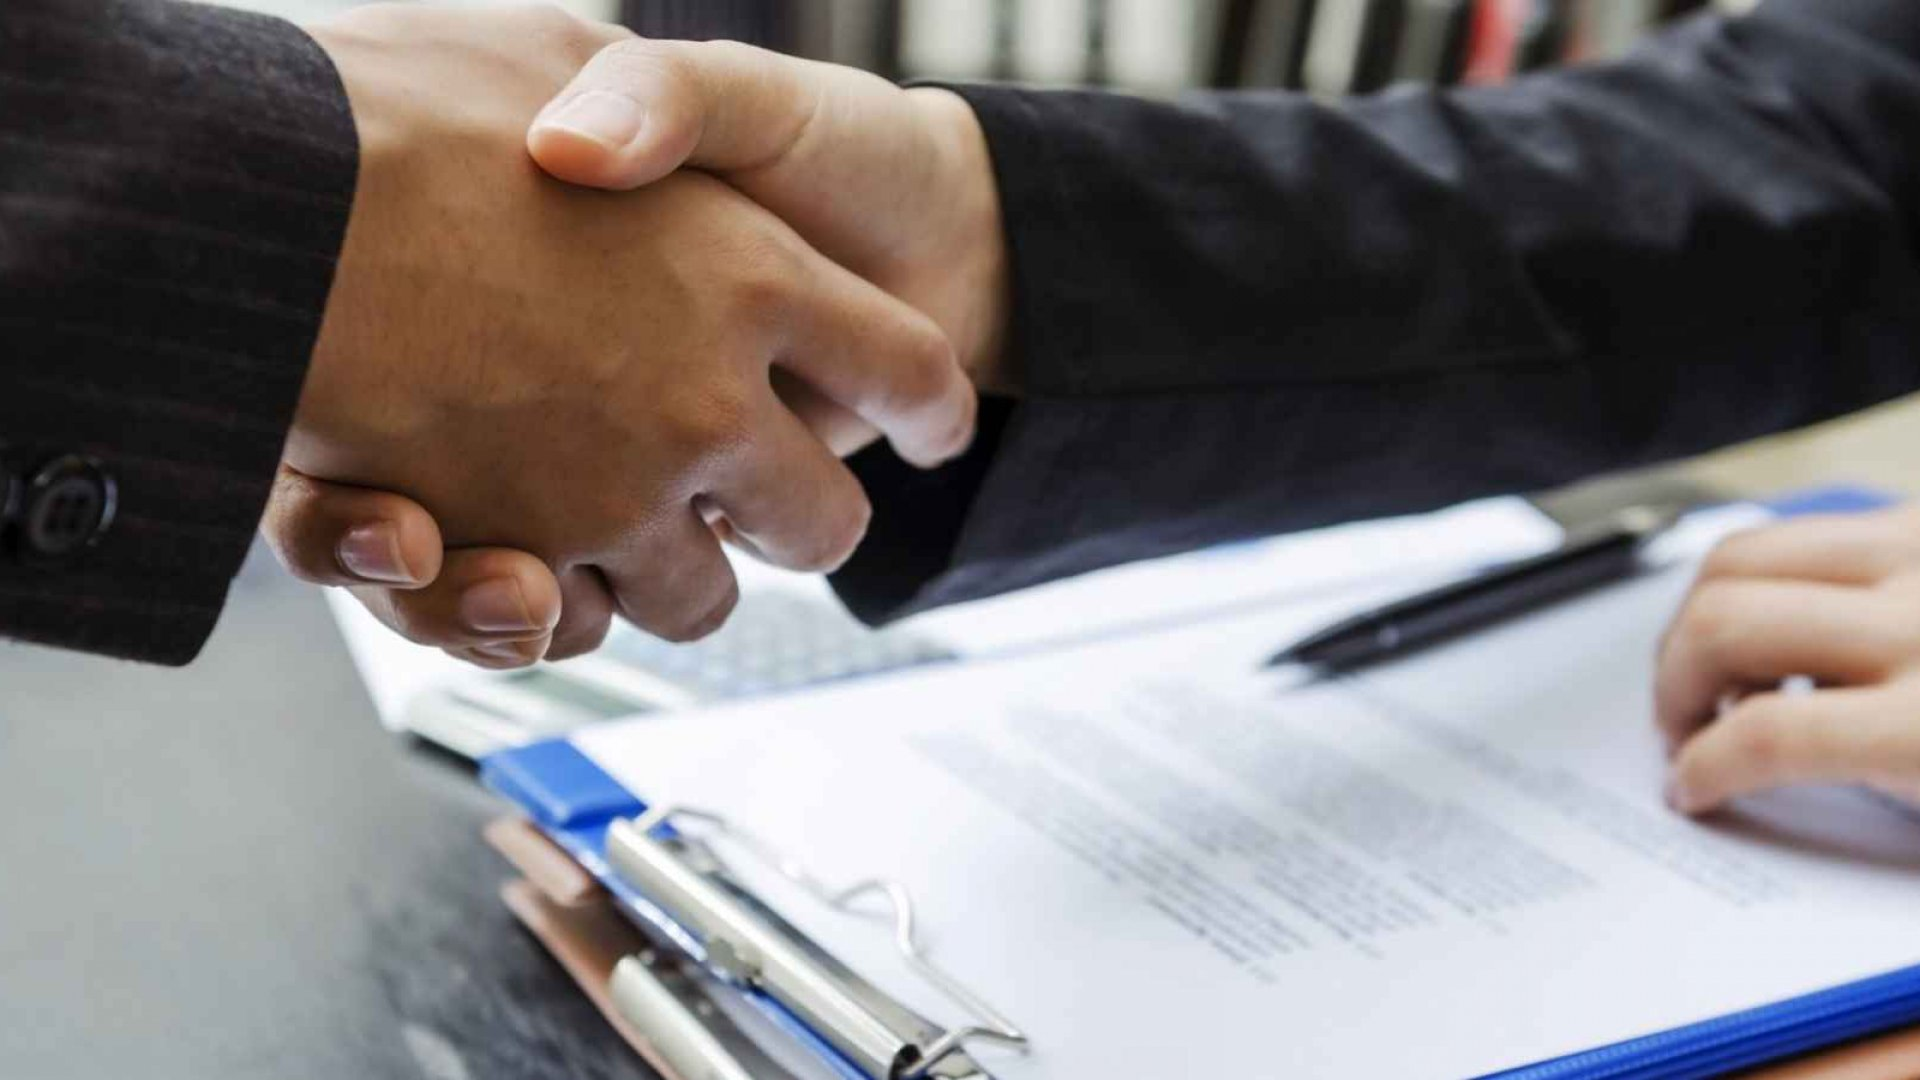 Signing This Document Could Save Your Business Someday